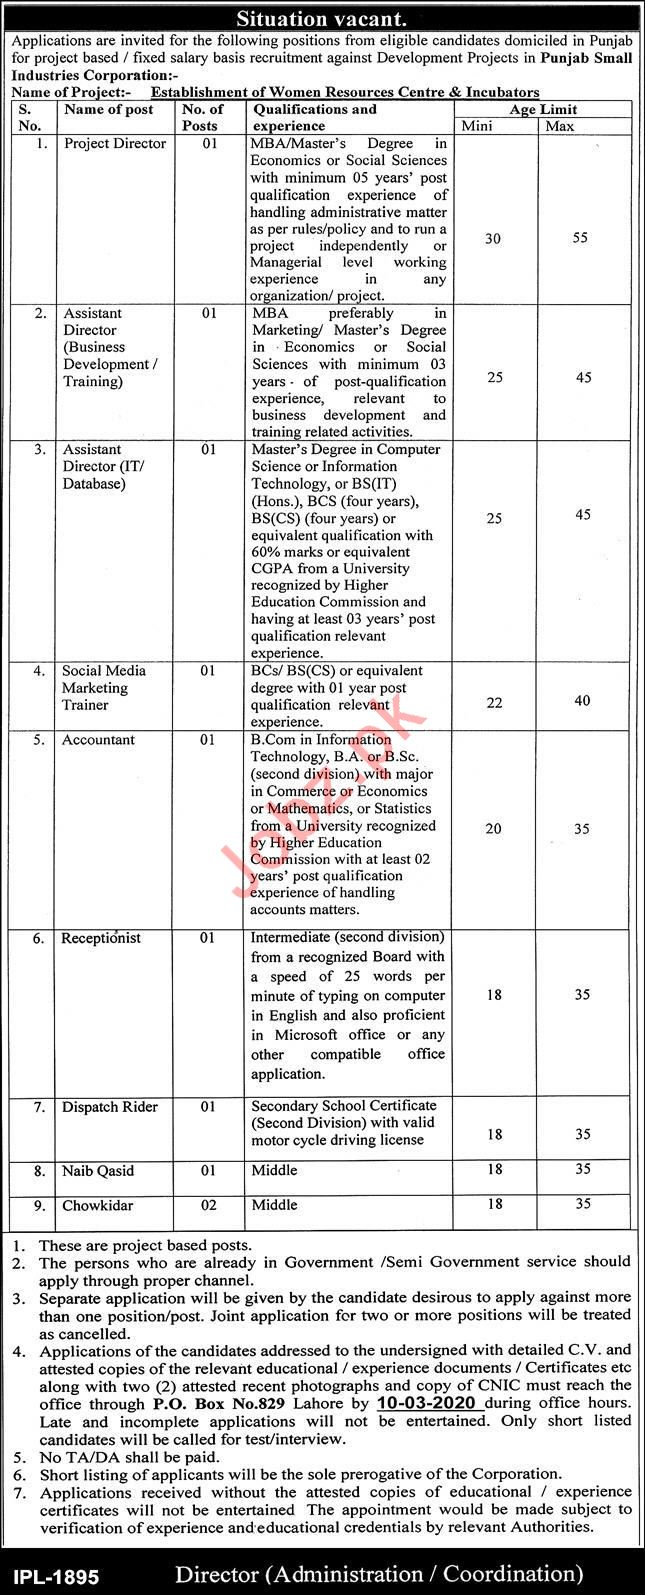 Punjab Small Industries Corporation Jobs 2020 For Lahore